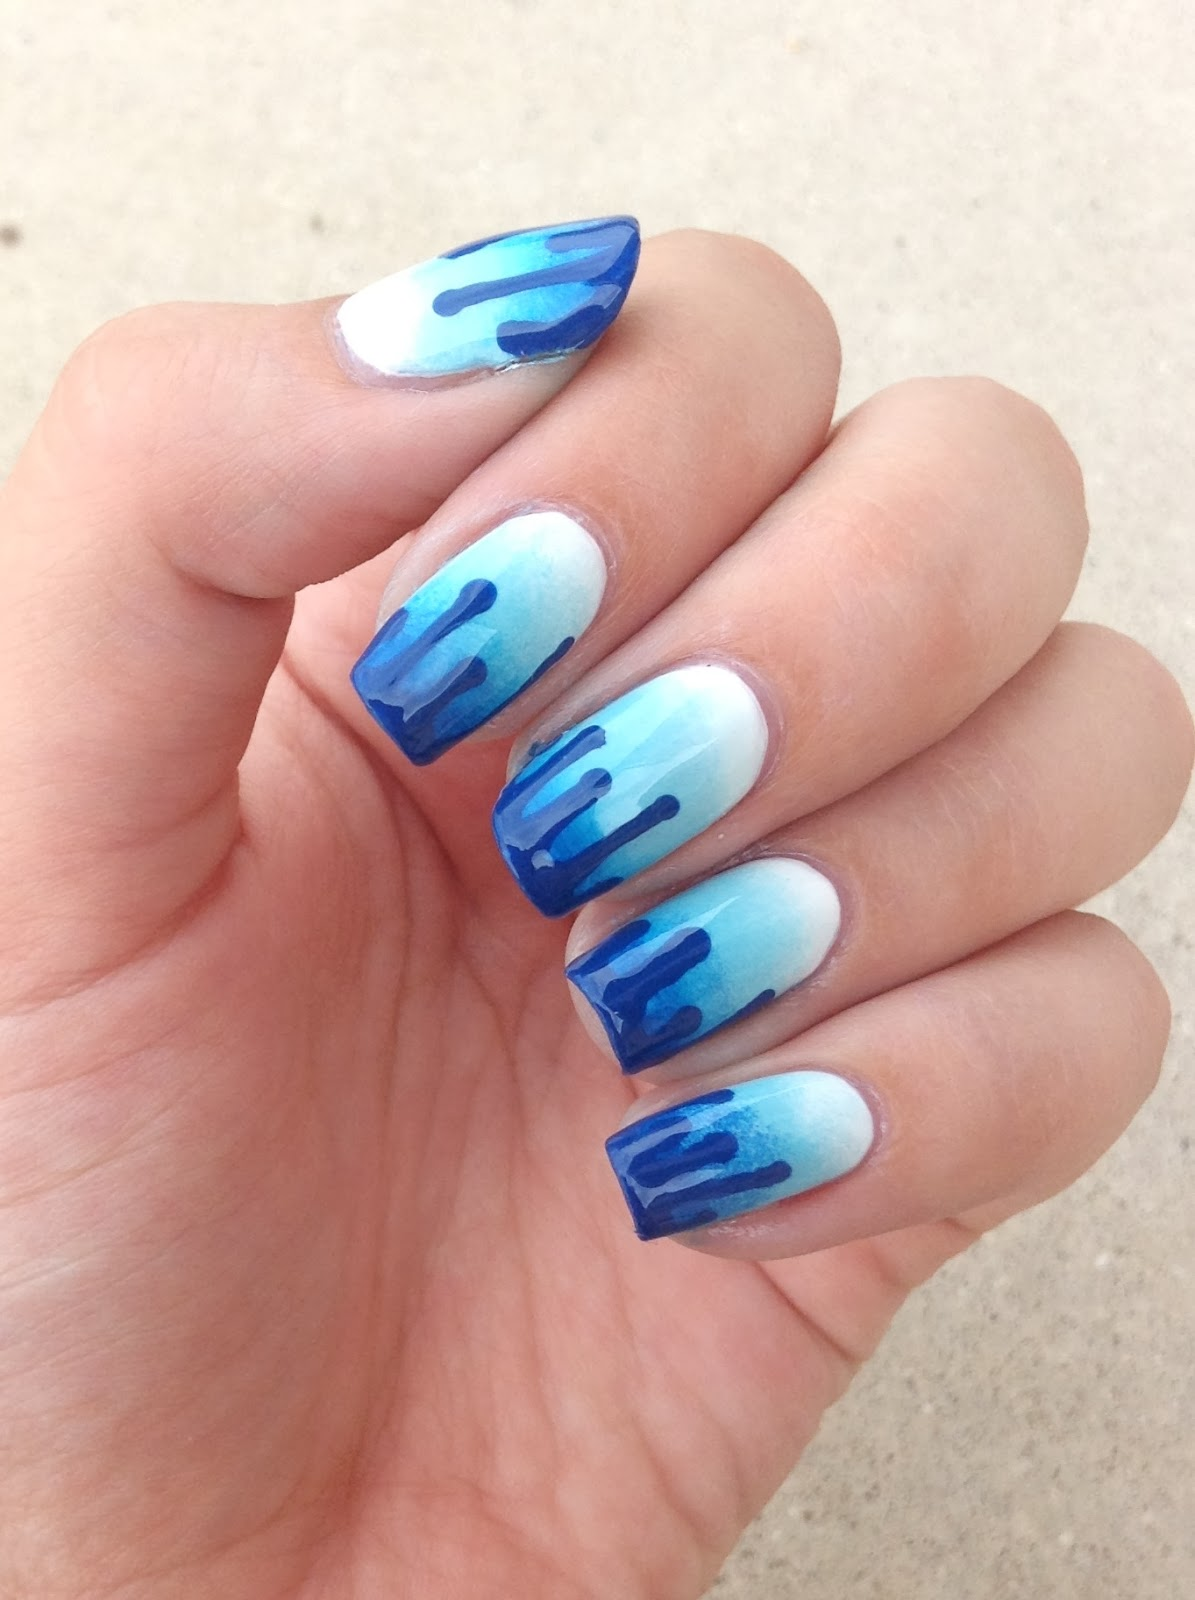 Nails by bayles august challenge ombre nail art starting i was looking at nail art on google and saw paint drip nails and in my head saw a gradient with the darker shade dripping down to the white prinsesfo Choice Image